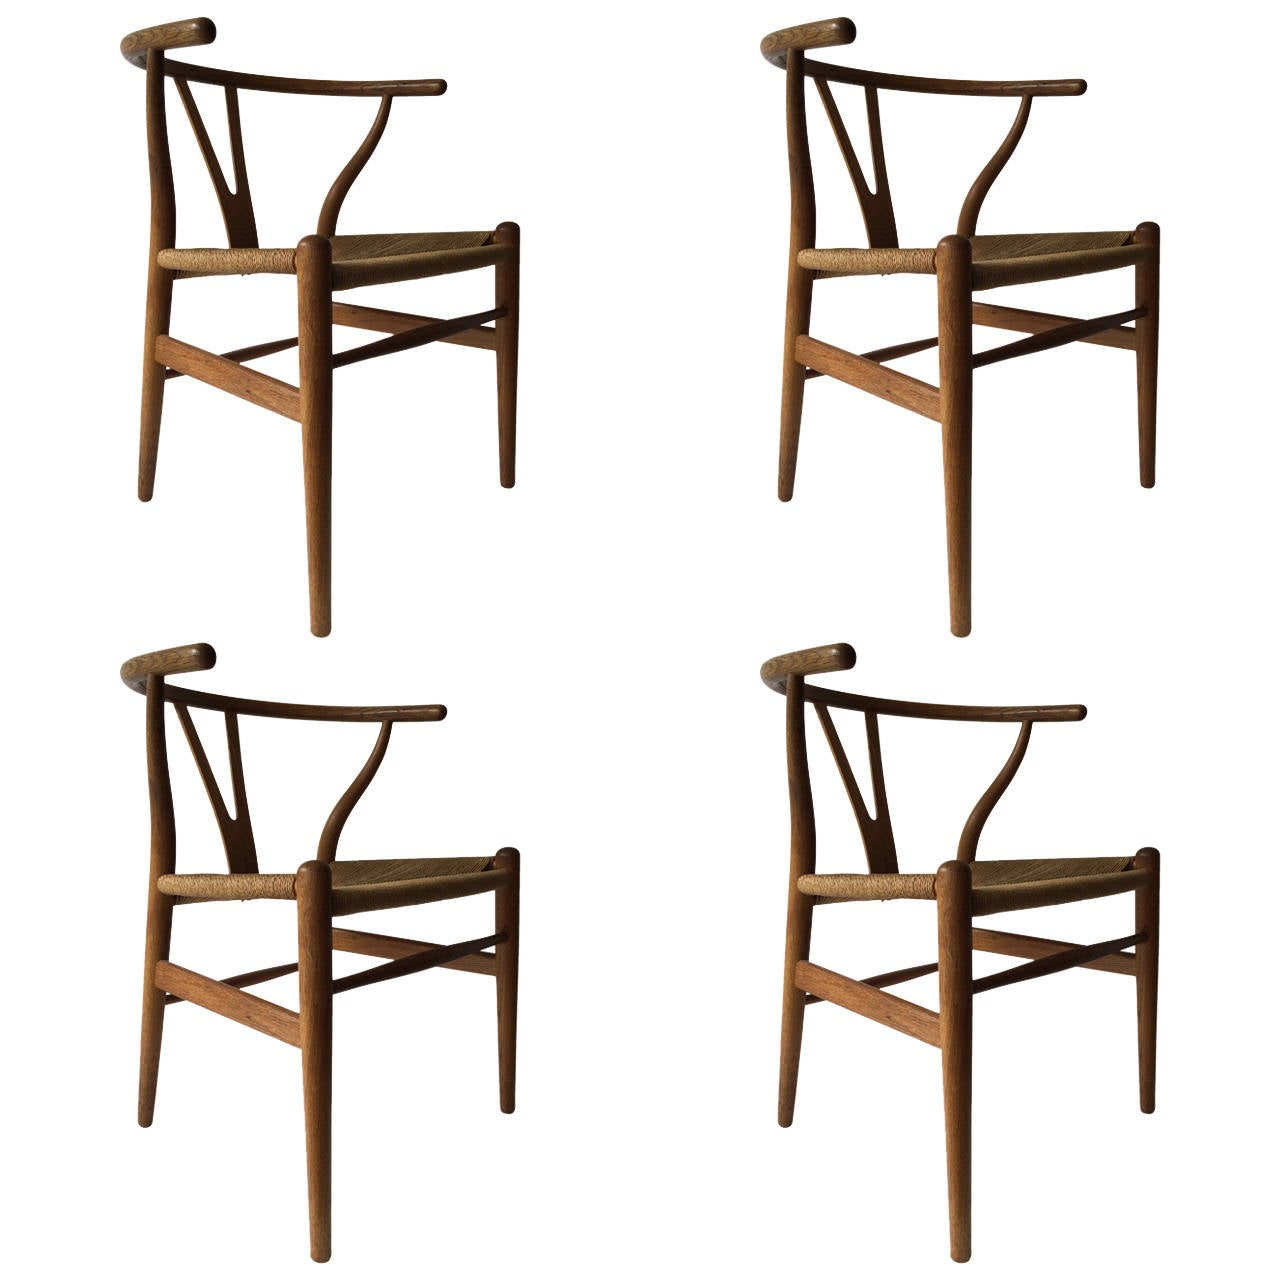 Set of Four Early Production Wishbone Chairs by Hans Wegner 1